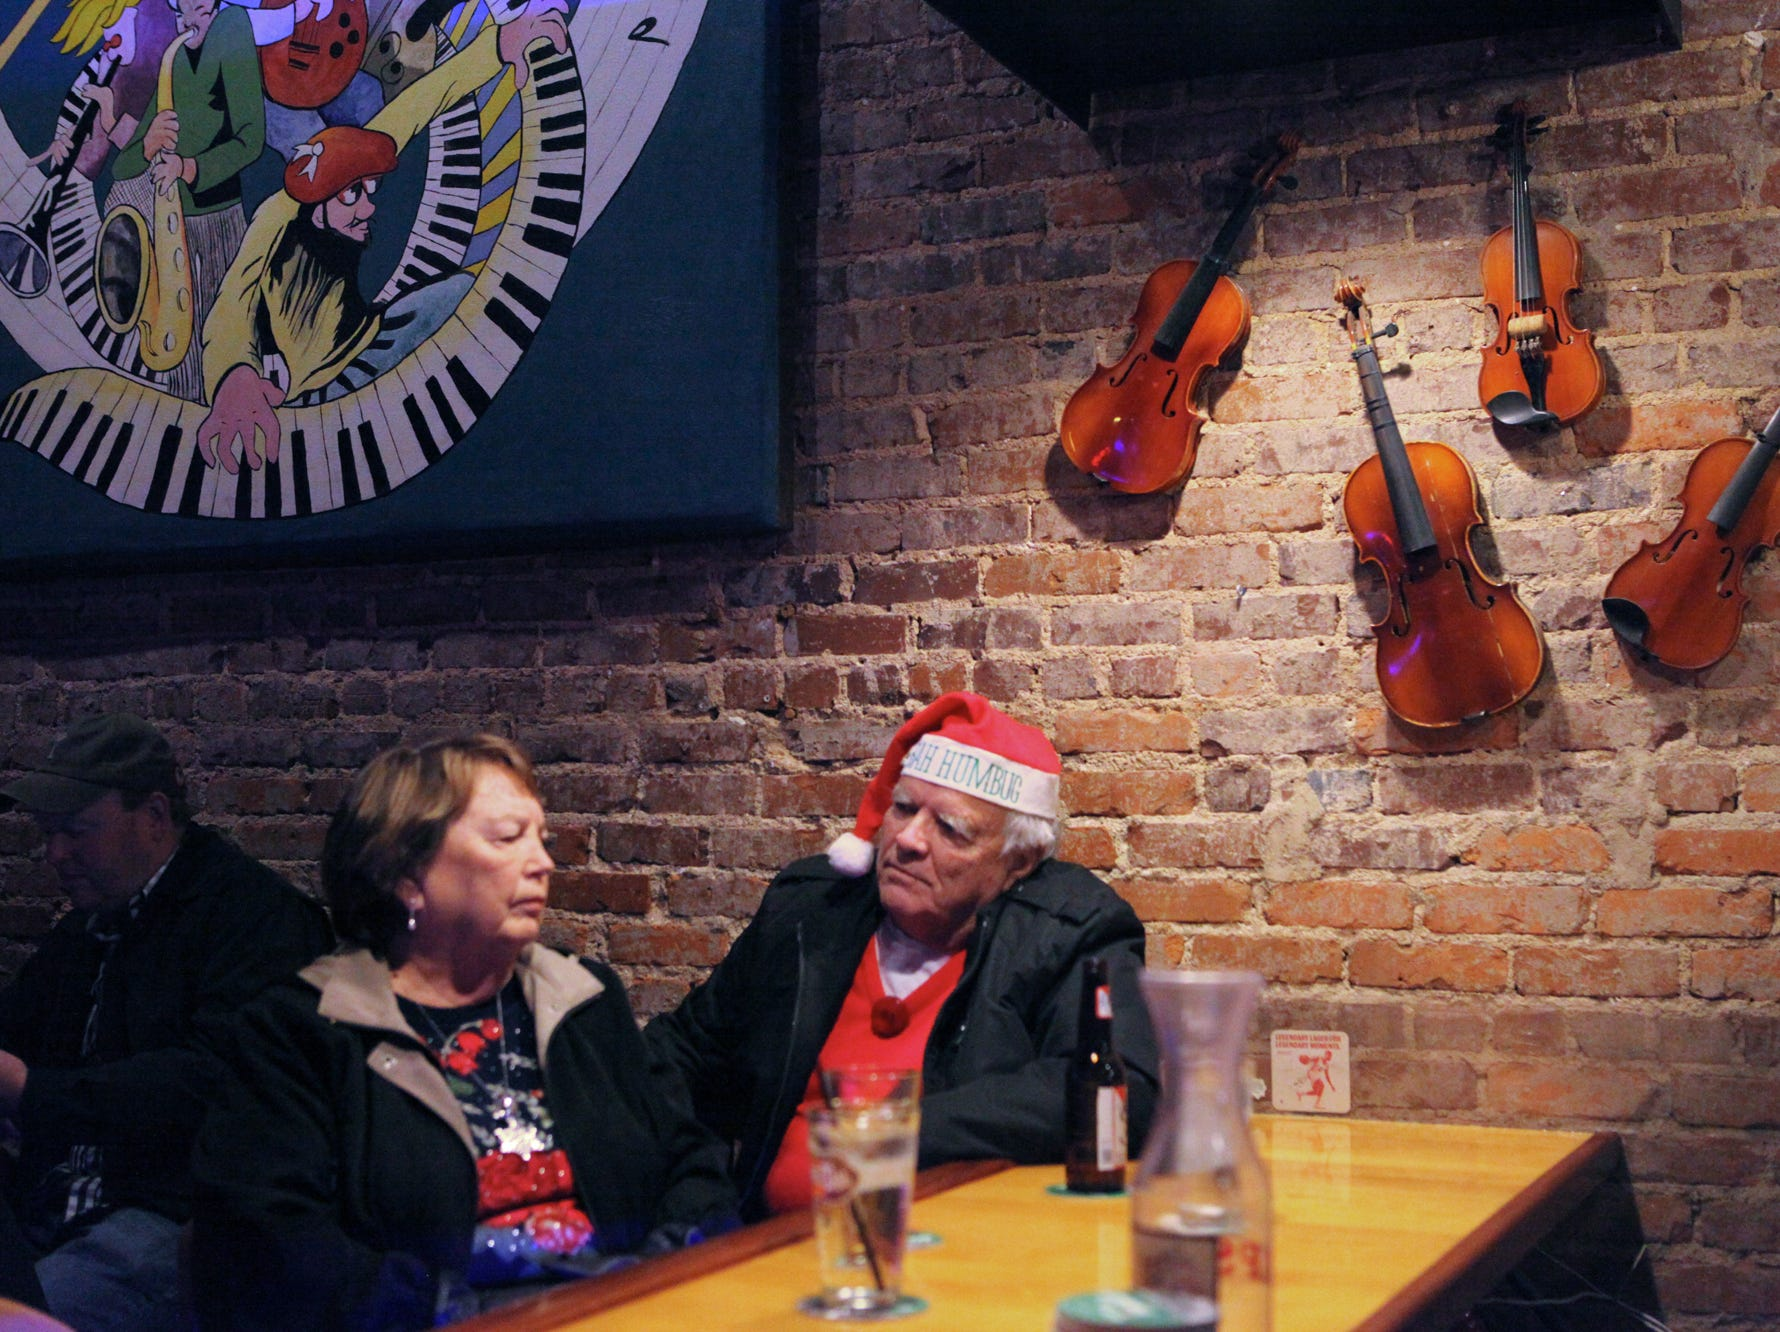 Linda Watts and Larry Watts. Simple Syrup performed their Holiday Jam at Smiley's Acoustic Cafe on December 22, 2018.